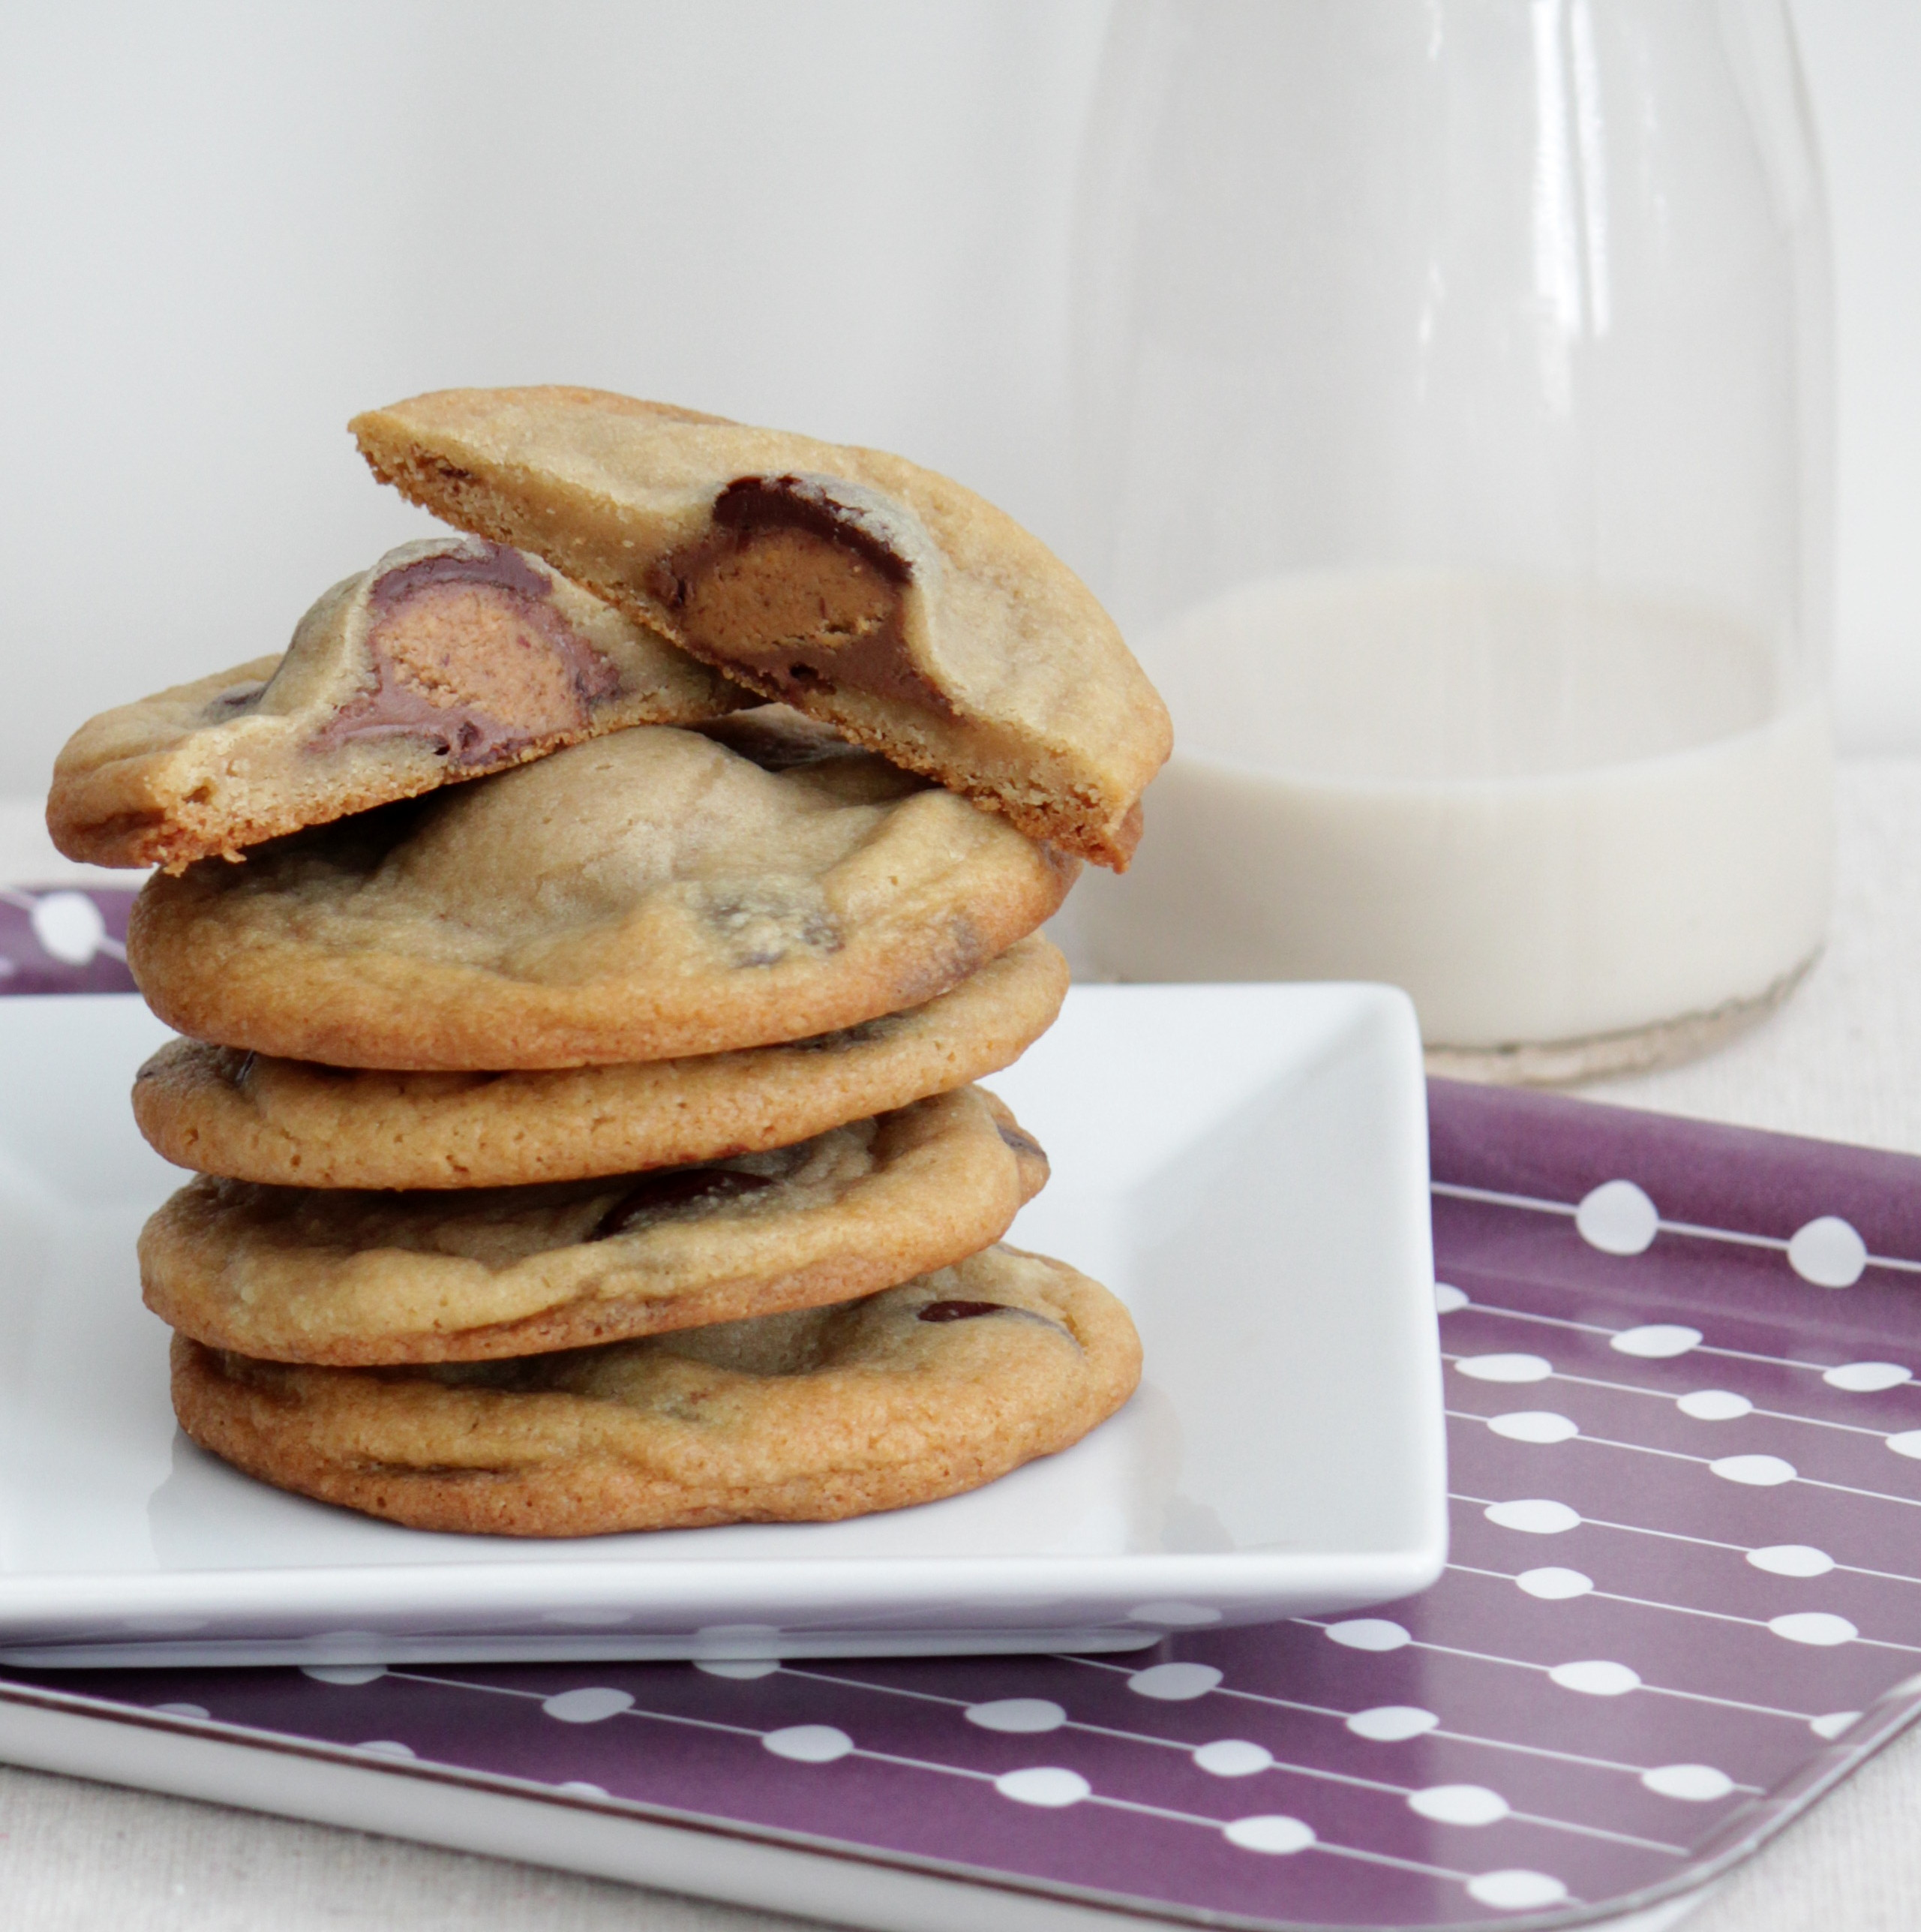 Reese's Cup Stuffed Chocolate Chip Cookies | Baking with Basil